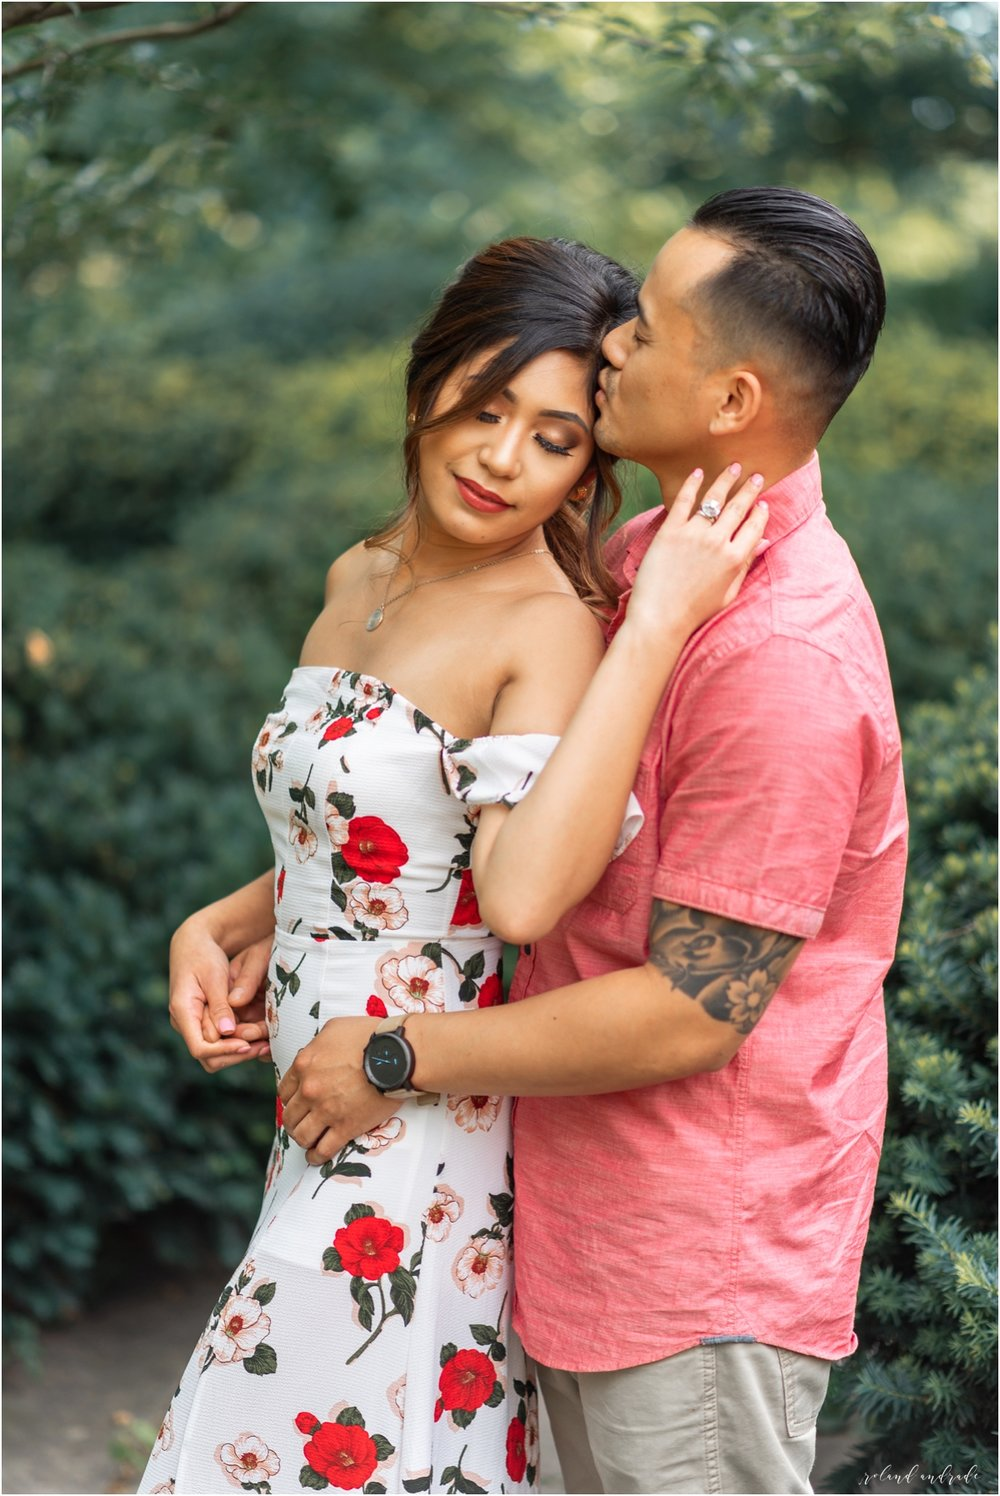 Cantigny Park Engagement Session, Wheaton Illinois Engagement Session, Chicago Wedding Photographer, Naperville Wedding Photographer, Aurora Wedding Photographer_0009.jpg